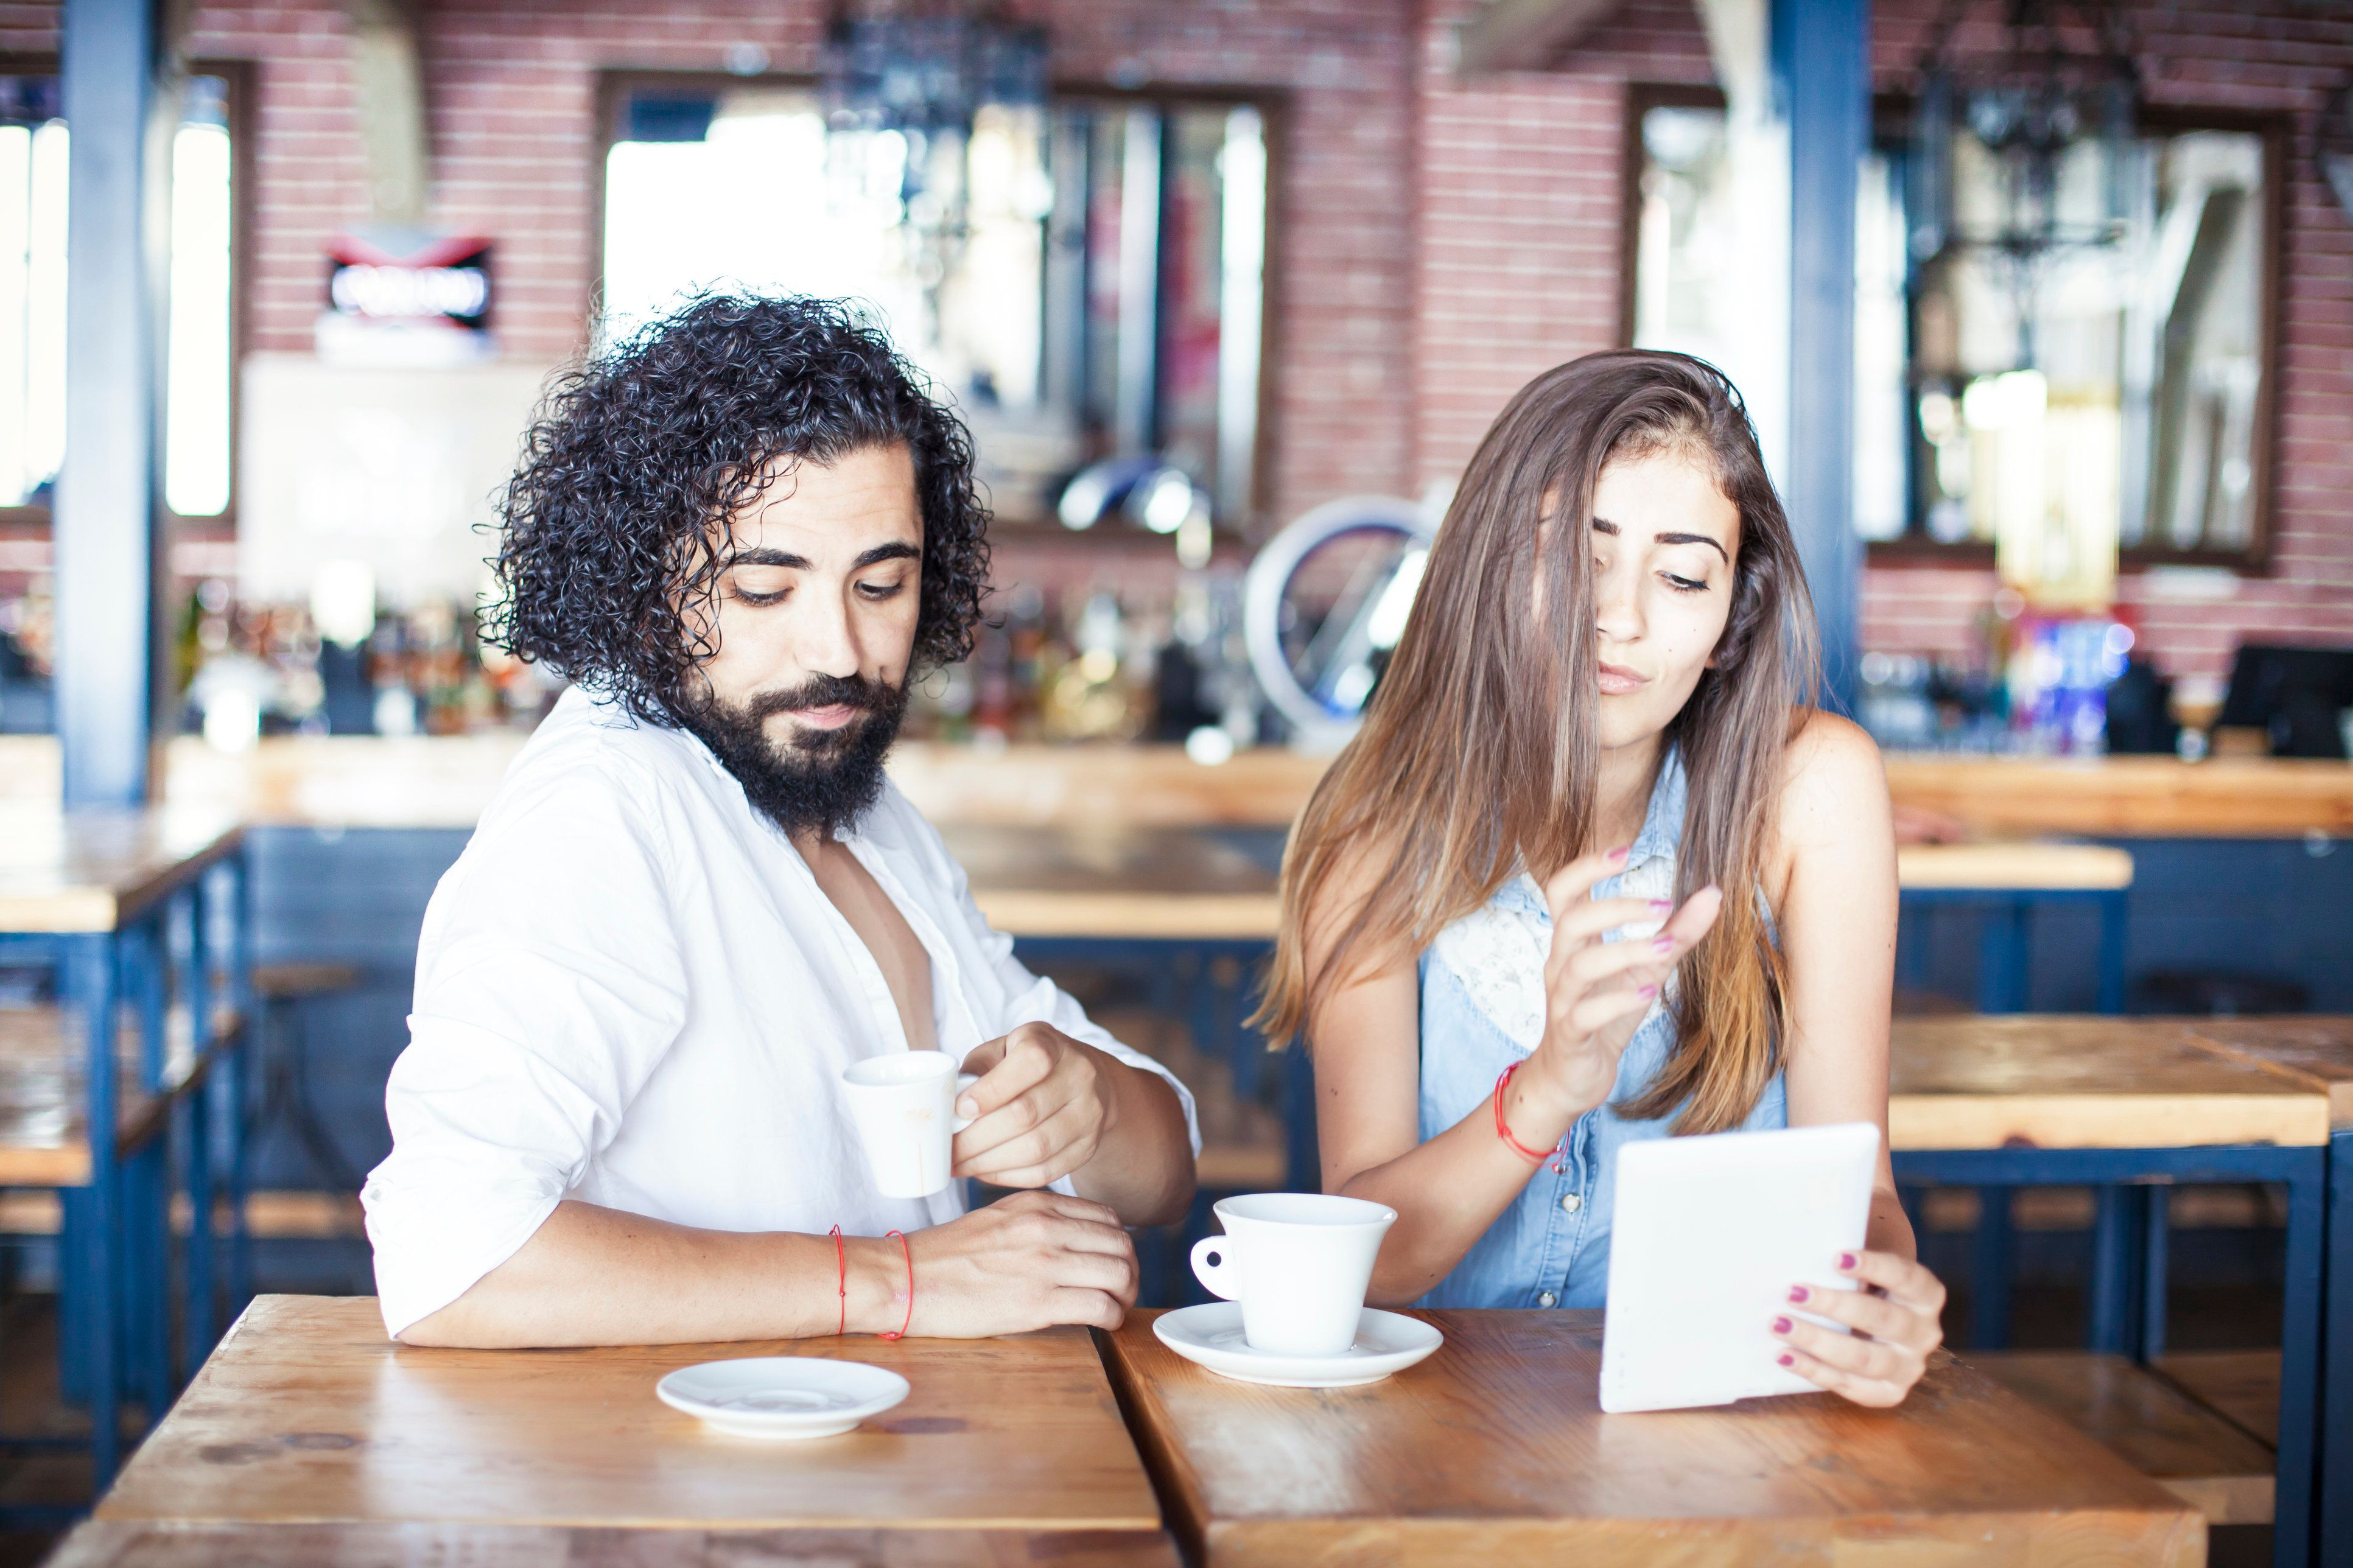 This Theory Might Explain Why Modern Dating Is So Difficult